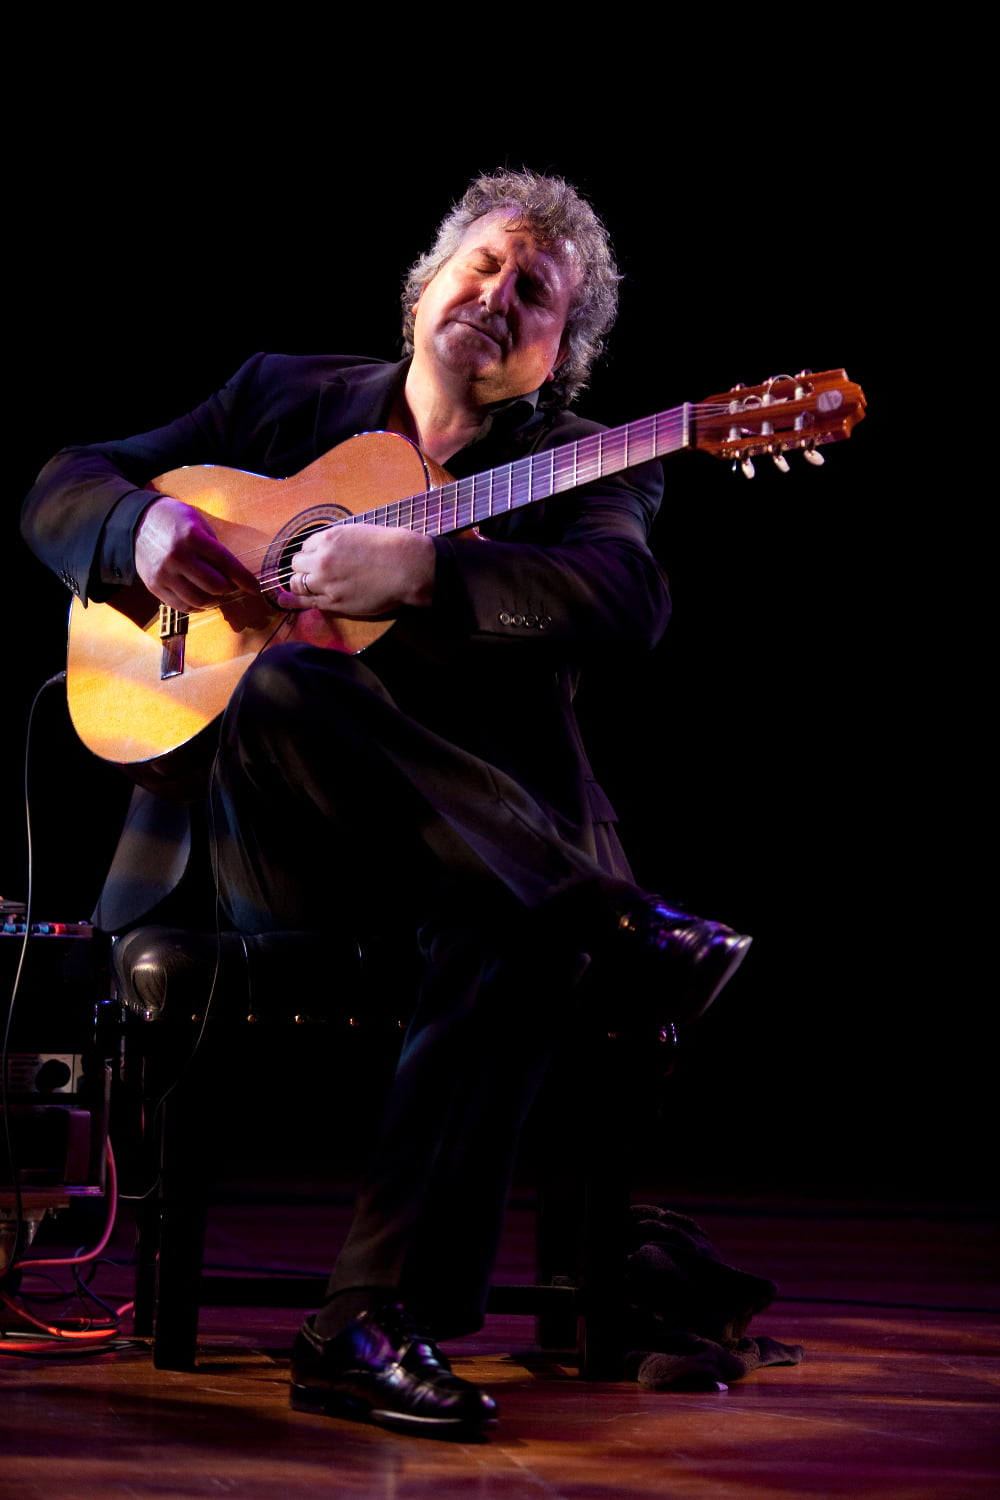 Eduardo Niebla in concert accompanied by Matthew Robinson (guitar)